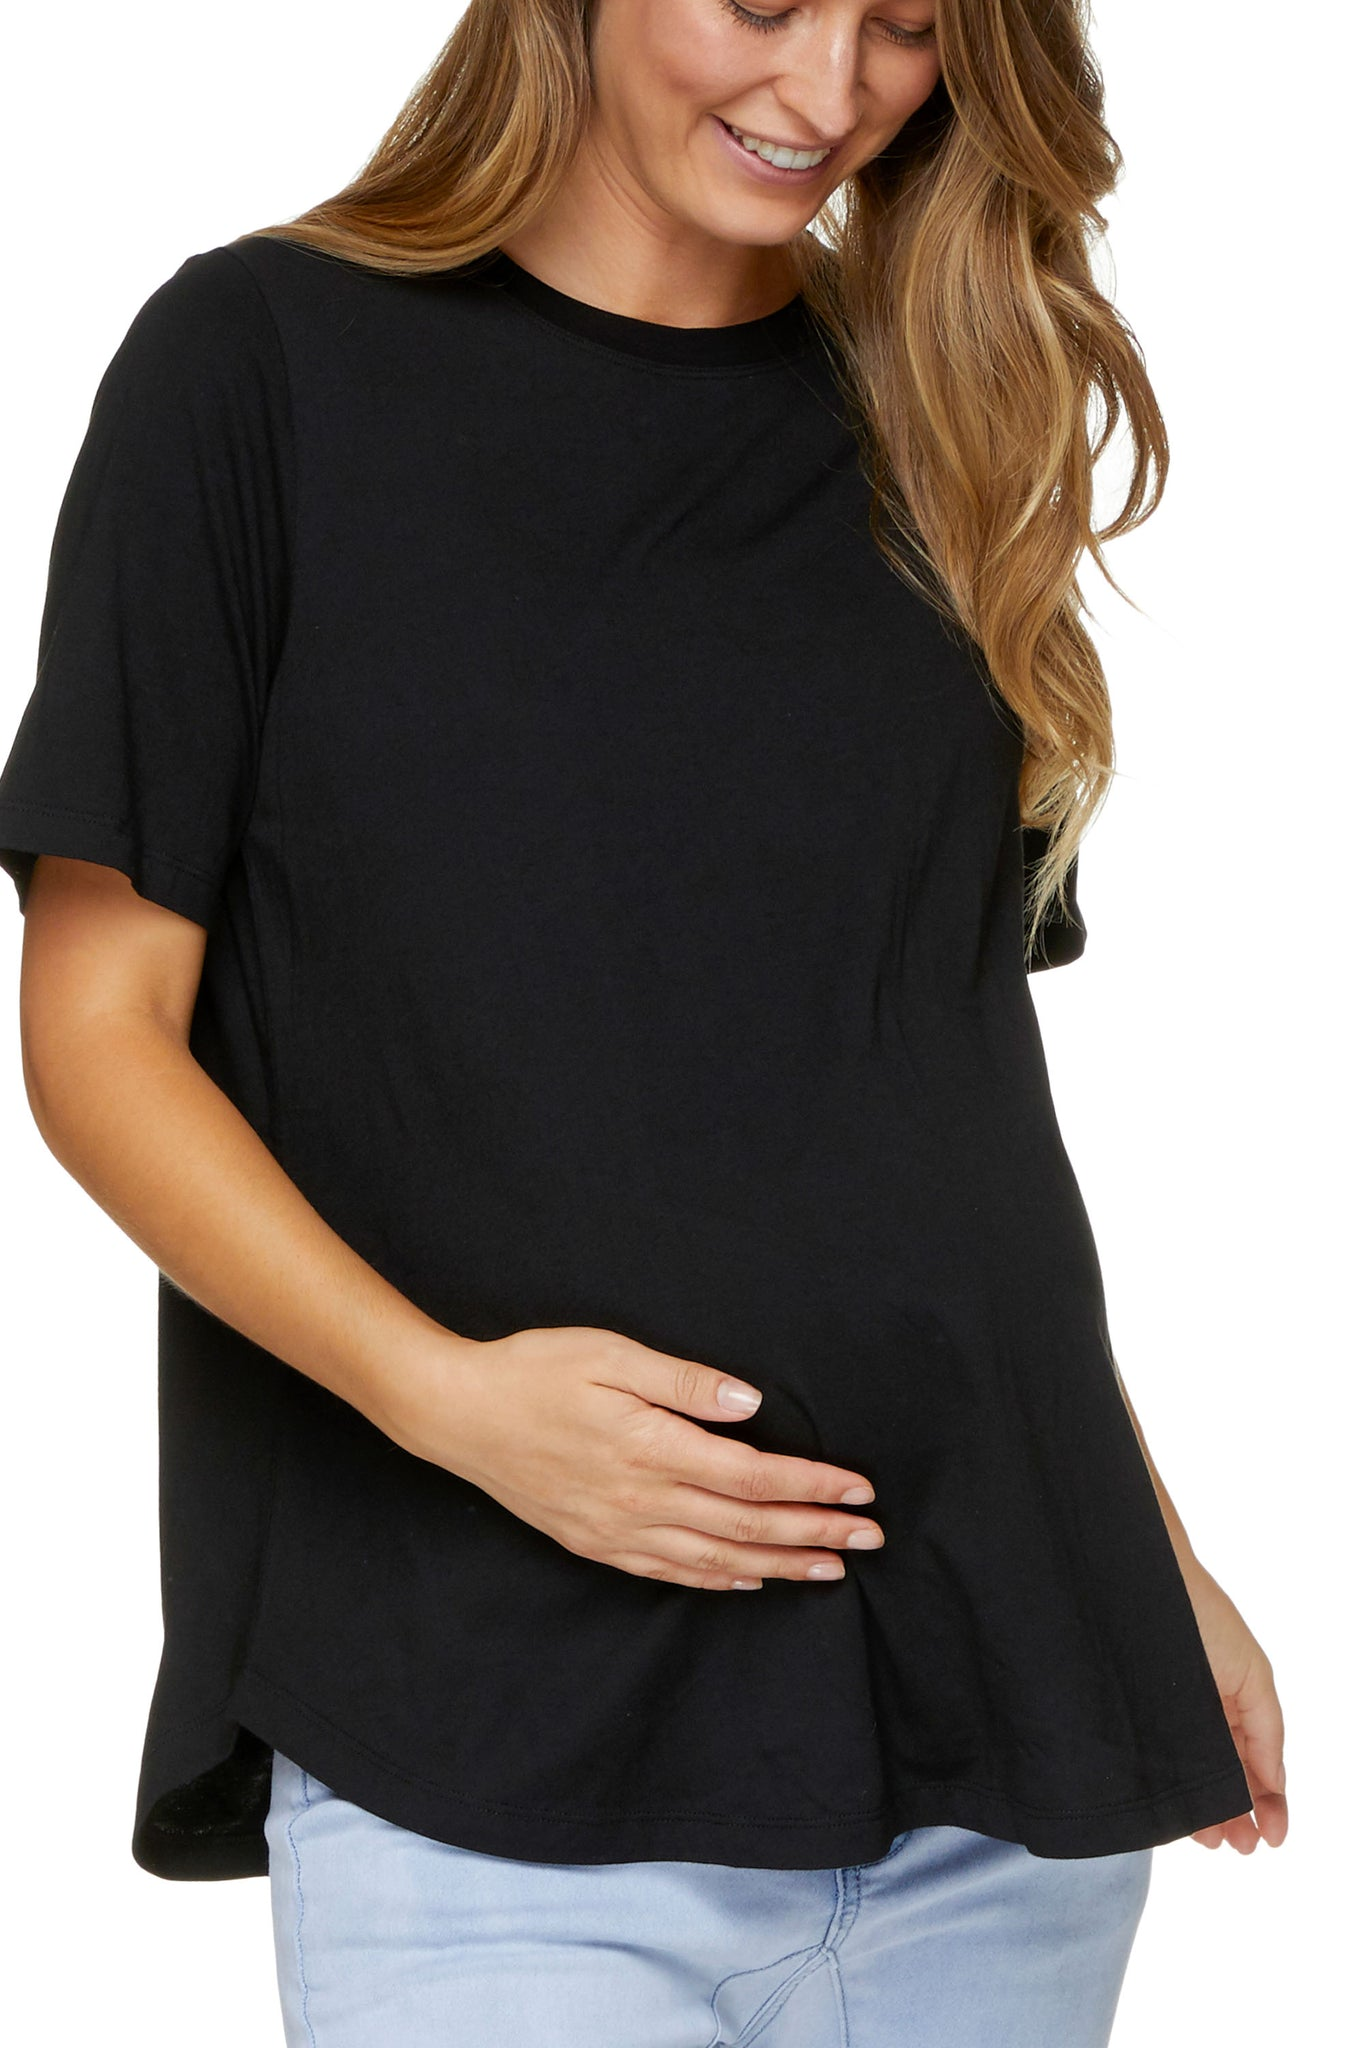 Maternity T Shirt - Black 4